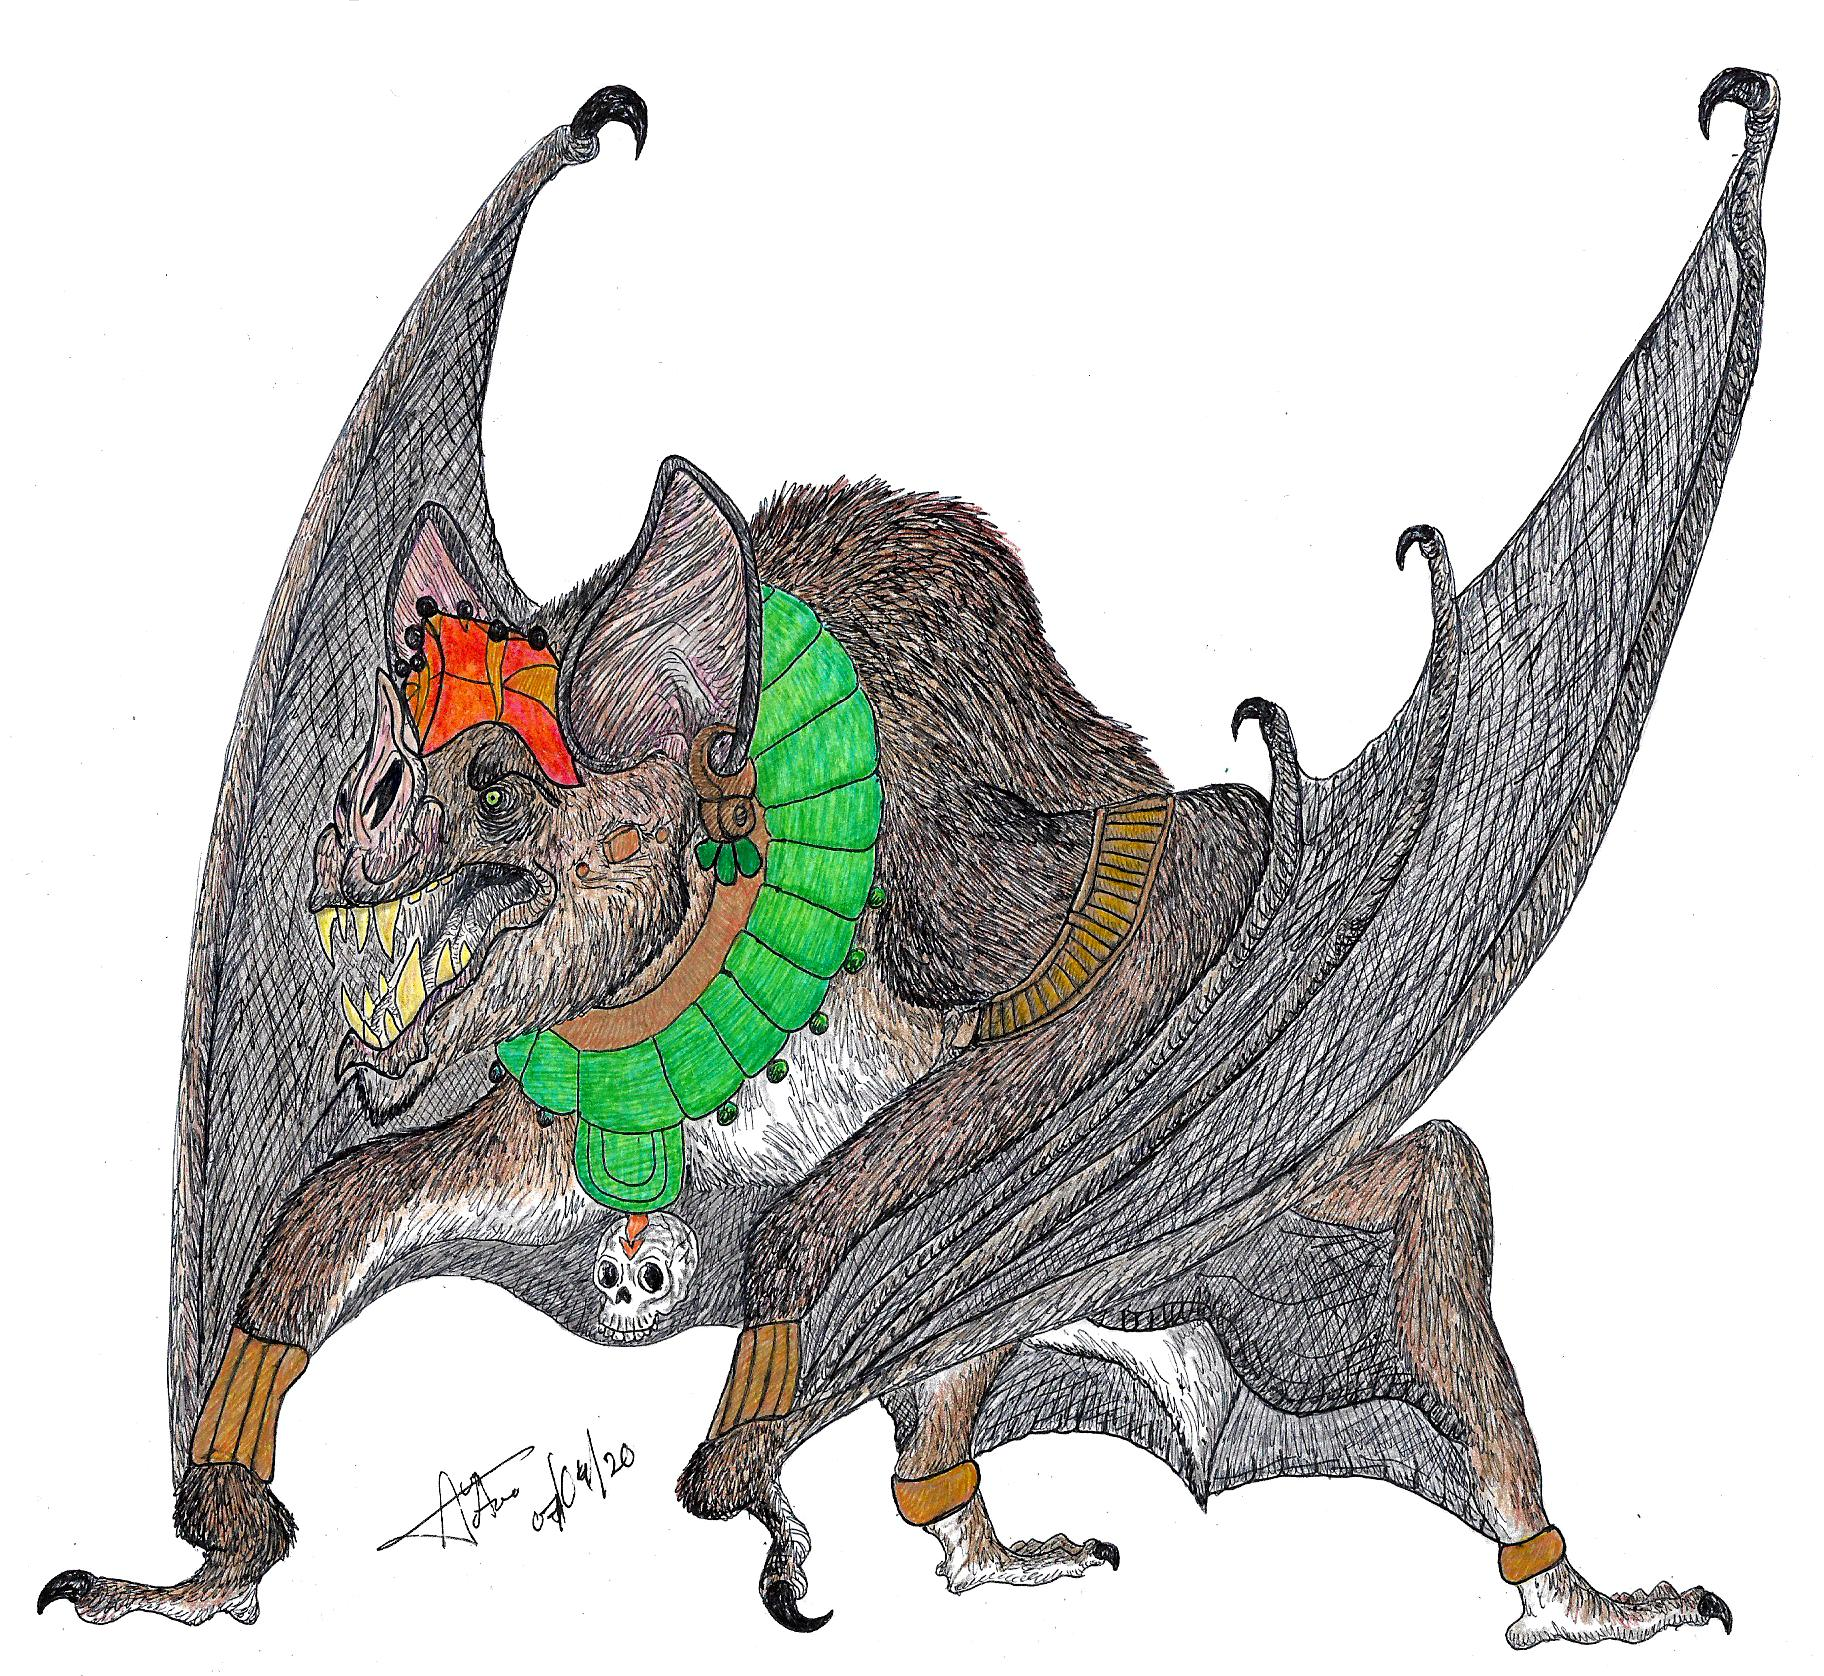 Camazotz By Ladalbarran2000 On Deviantart Drawings Of Friends Pictures To Draw Best Friend Drawings